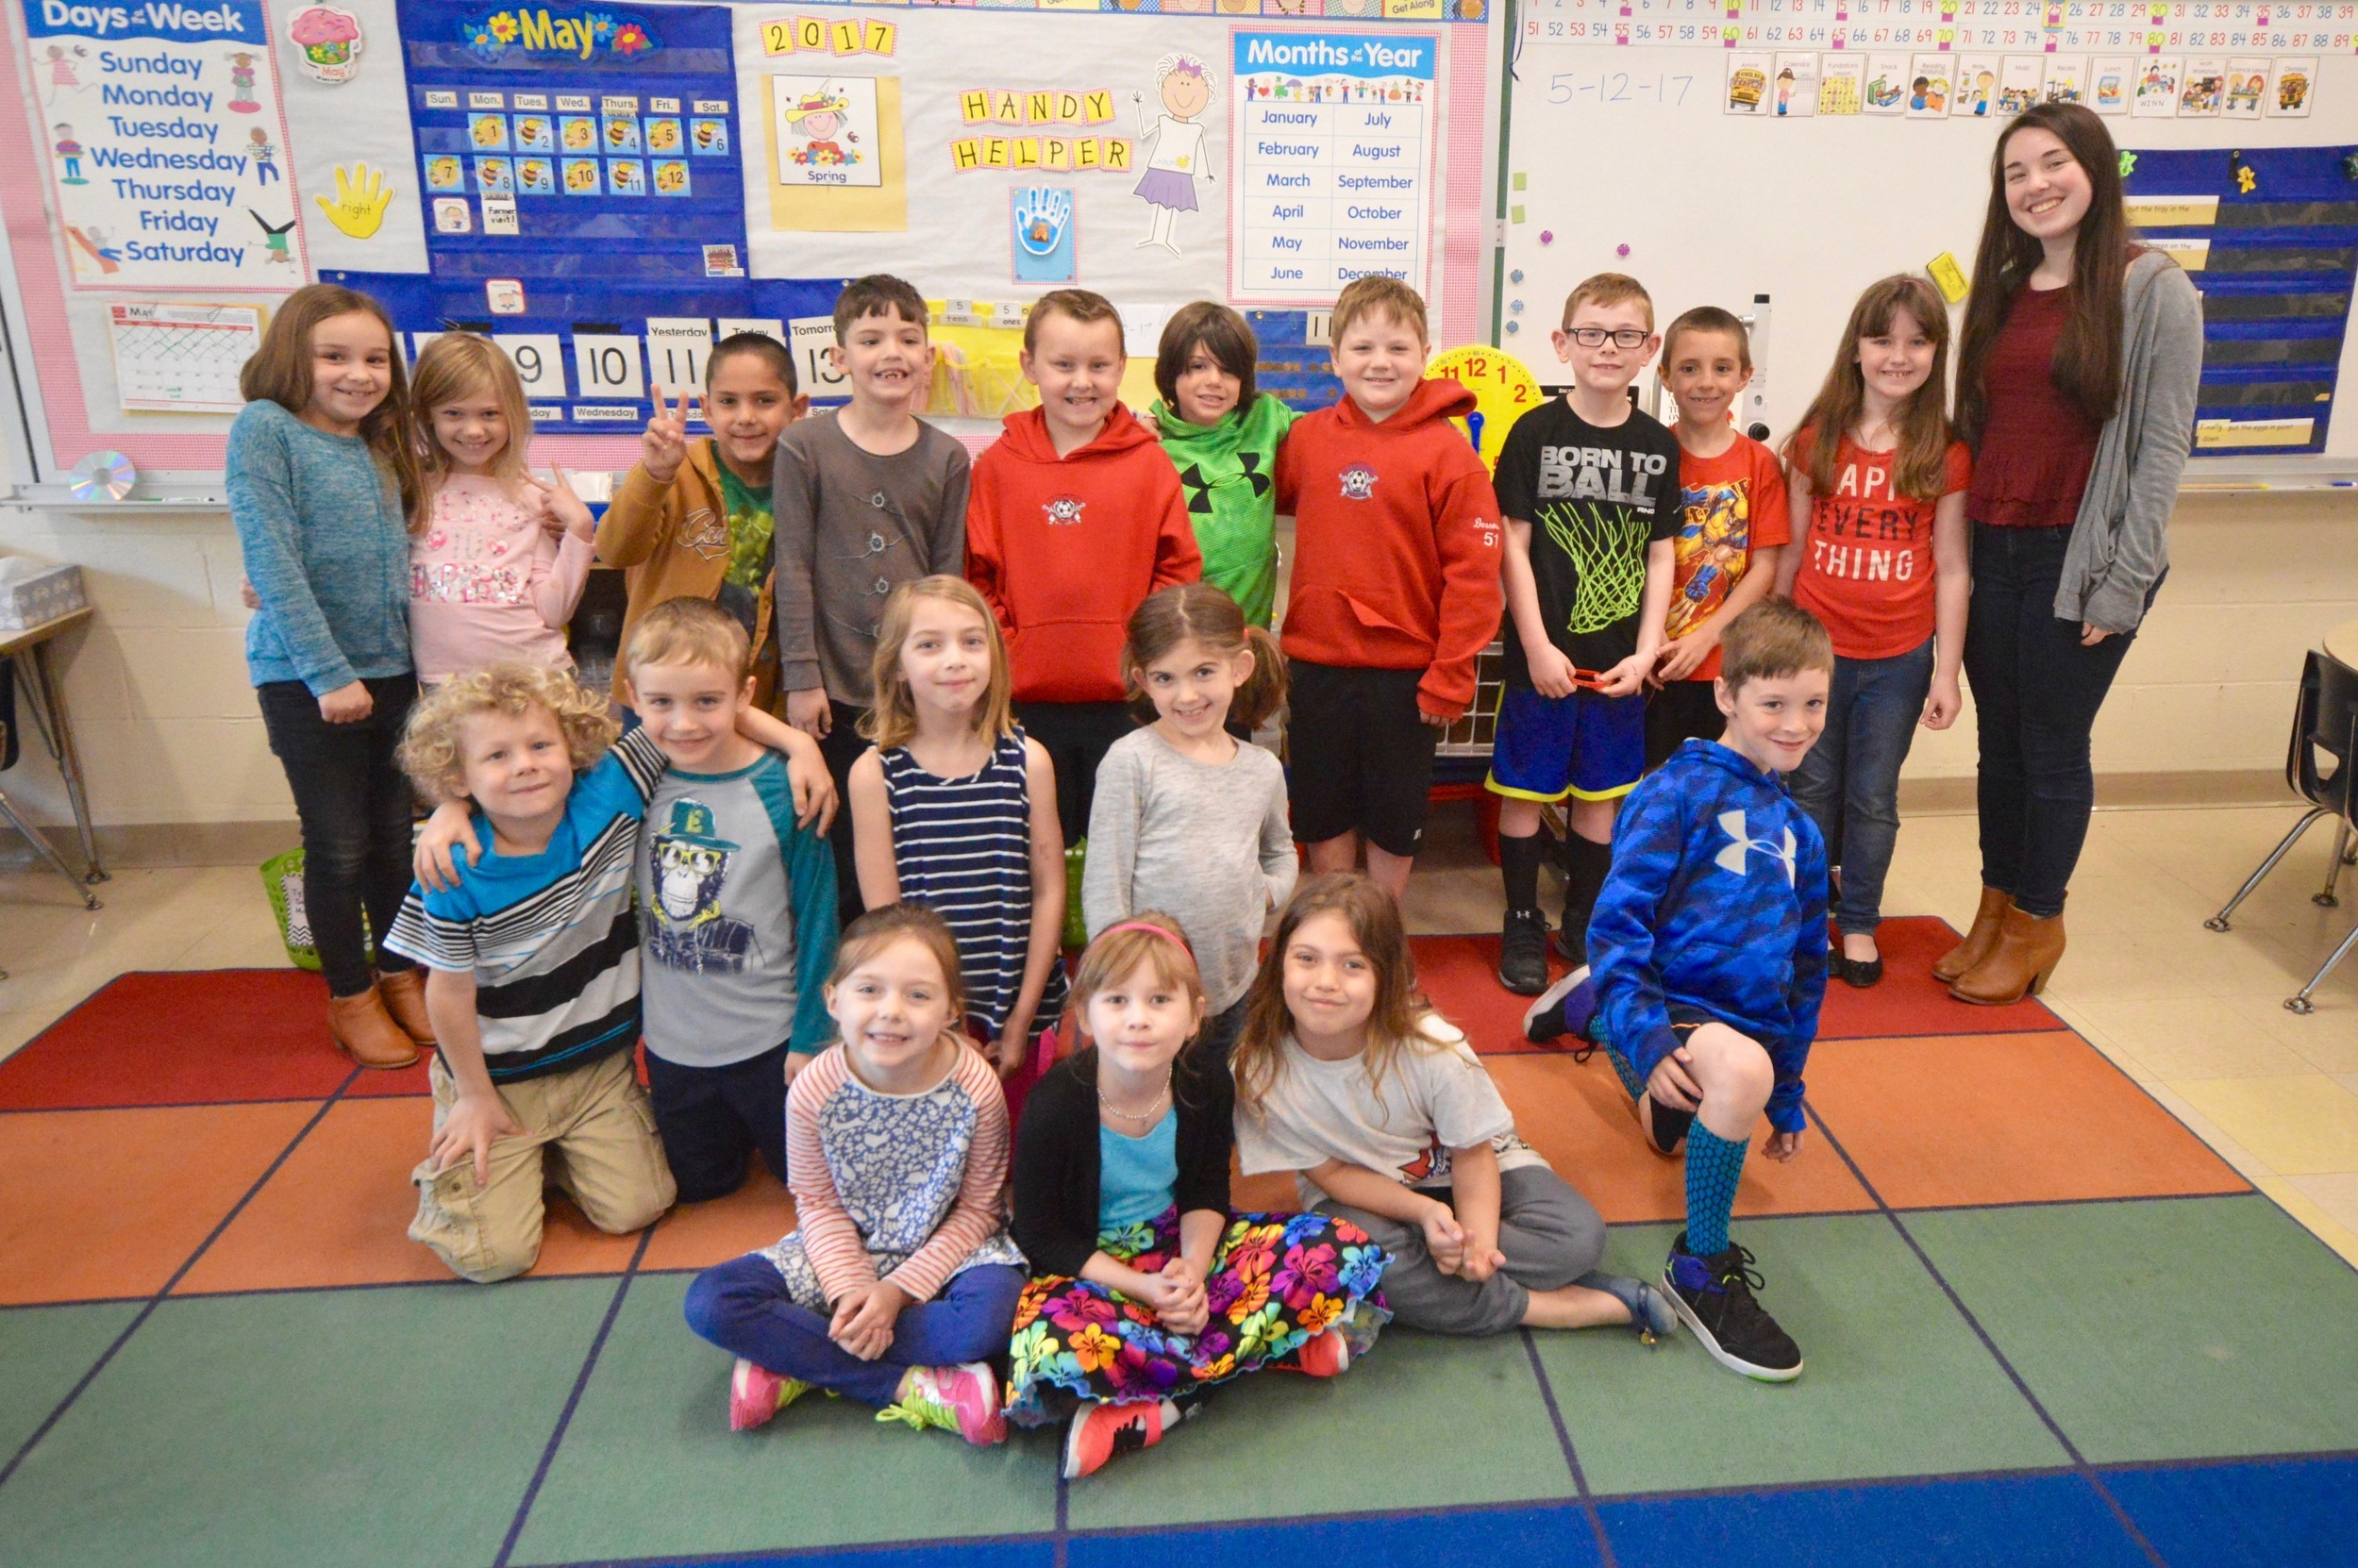 First-grade students in Diana Grinnell's class at Hathaway School pose with Grace Dooley, a PHS senior taking child development classes who has been coming in and working with students on a periodic basis.